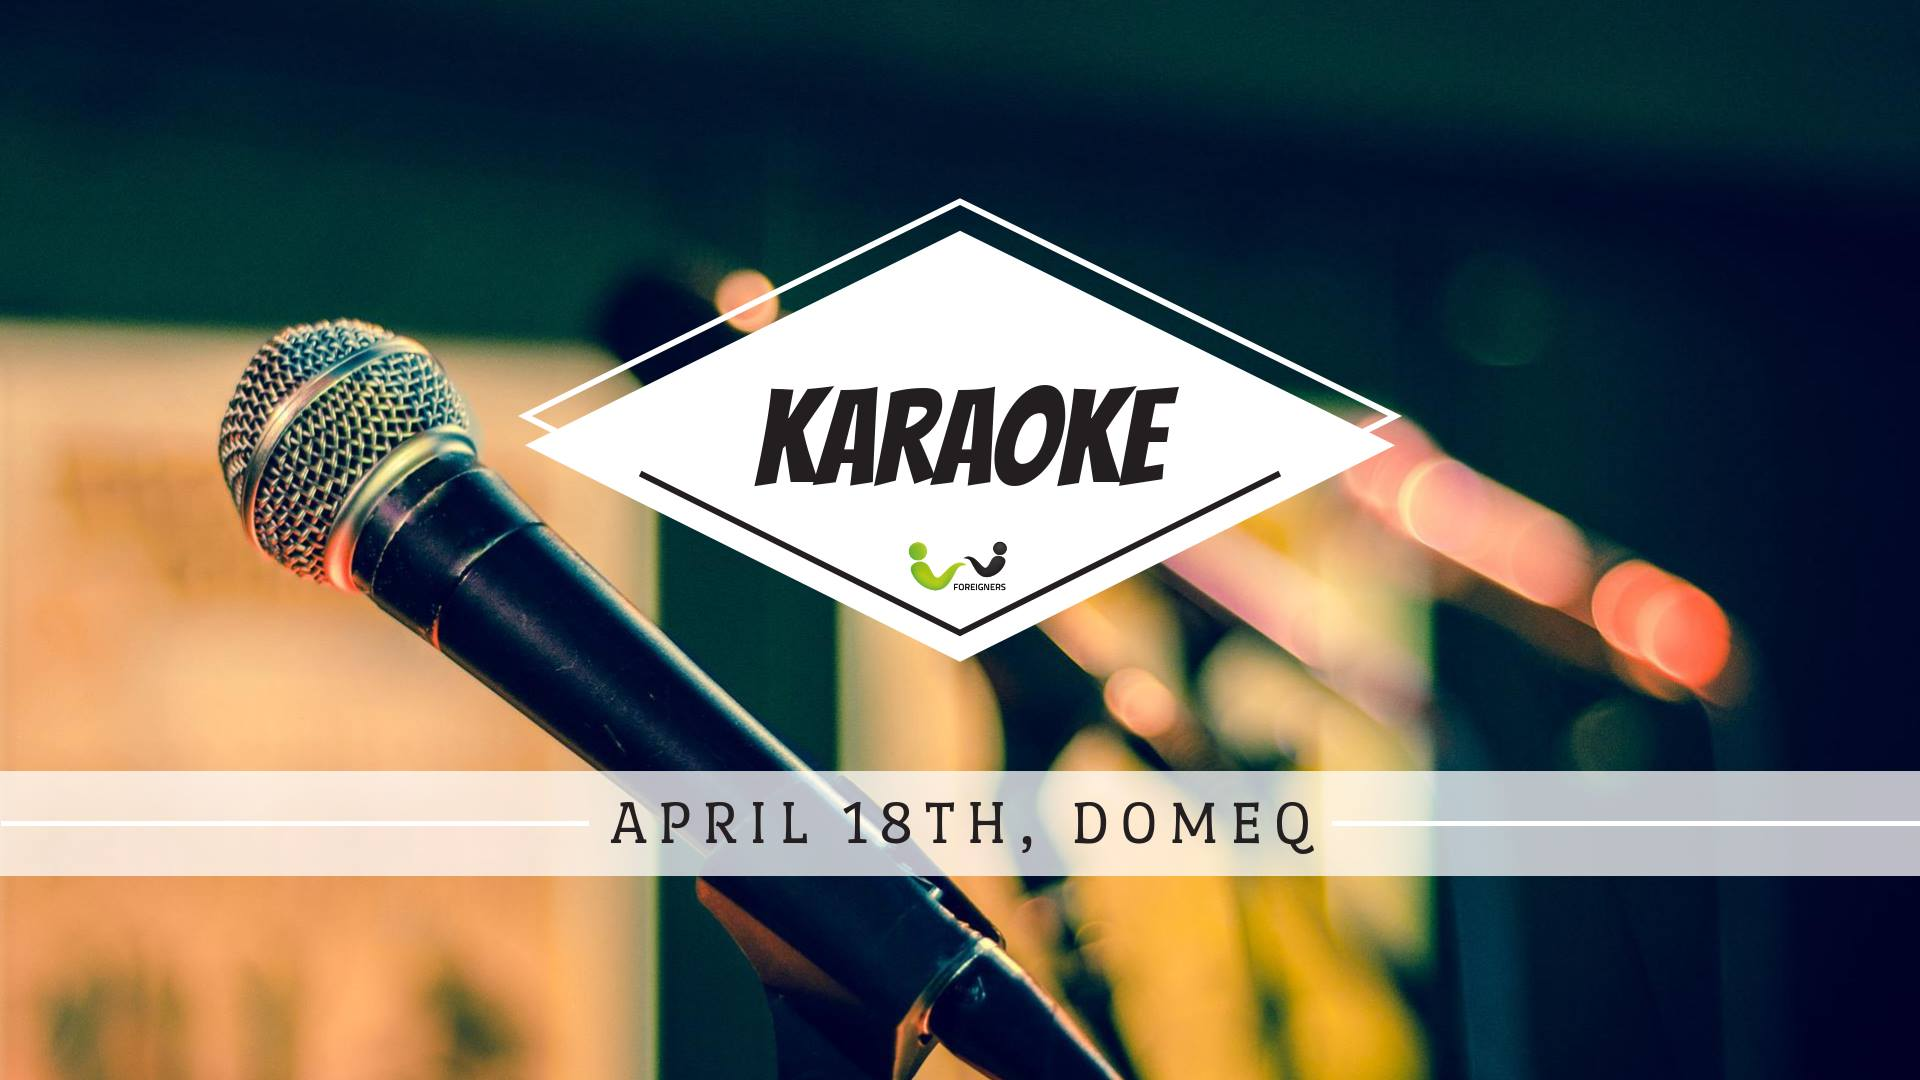 Join us for Karaoke Night at Domeq! | Foreigners cz Blog